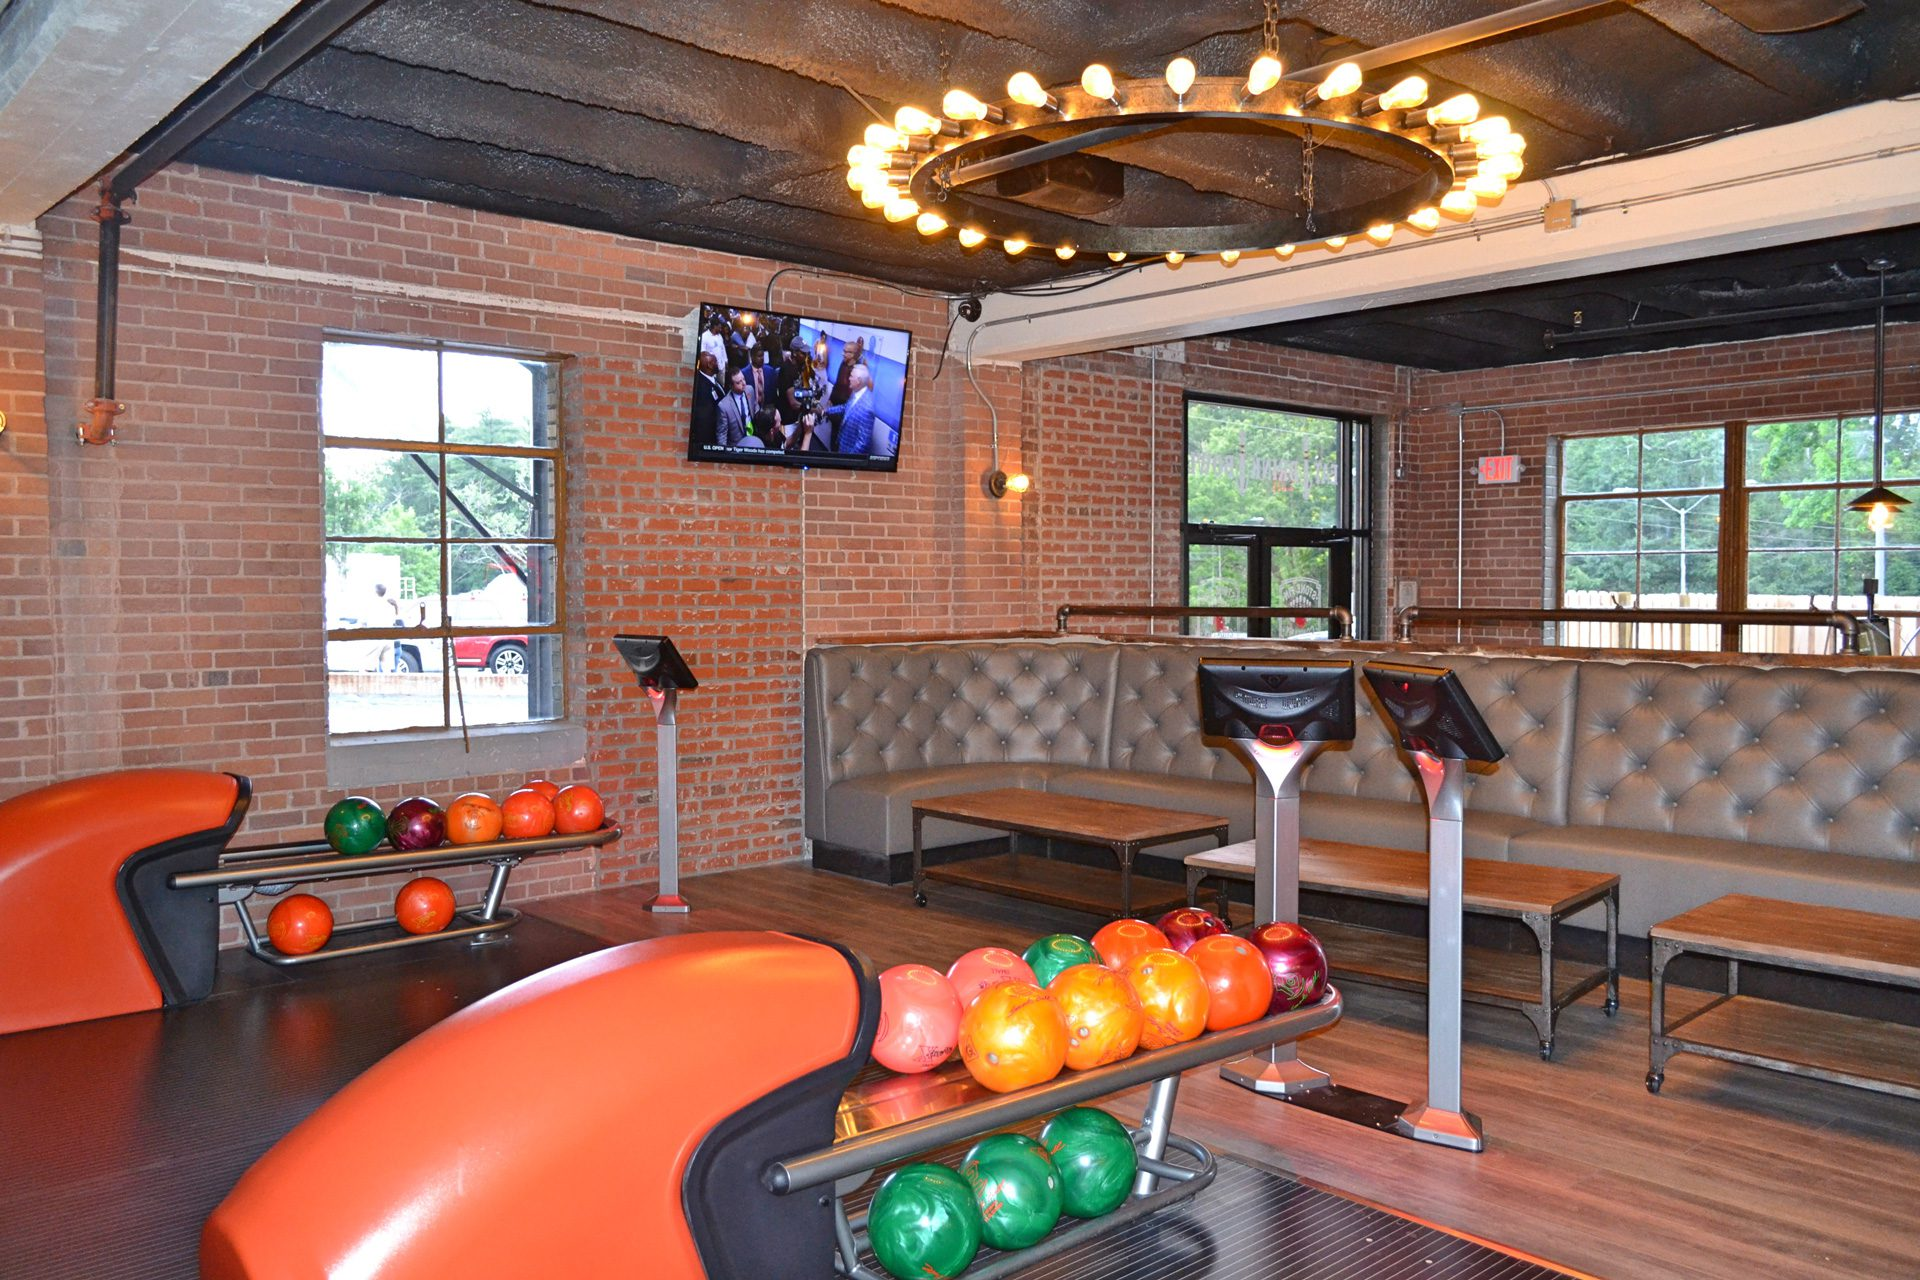 Wel e to Stone Pin pany Stone Pin Bowling Alley